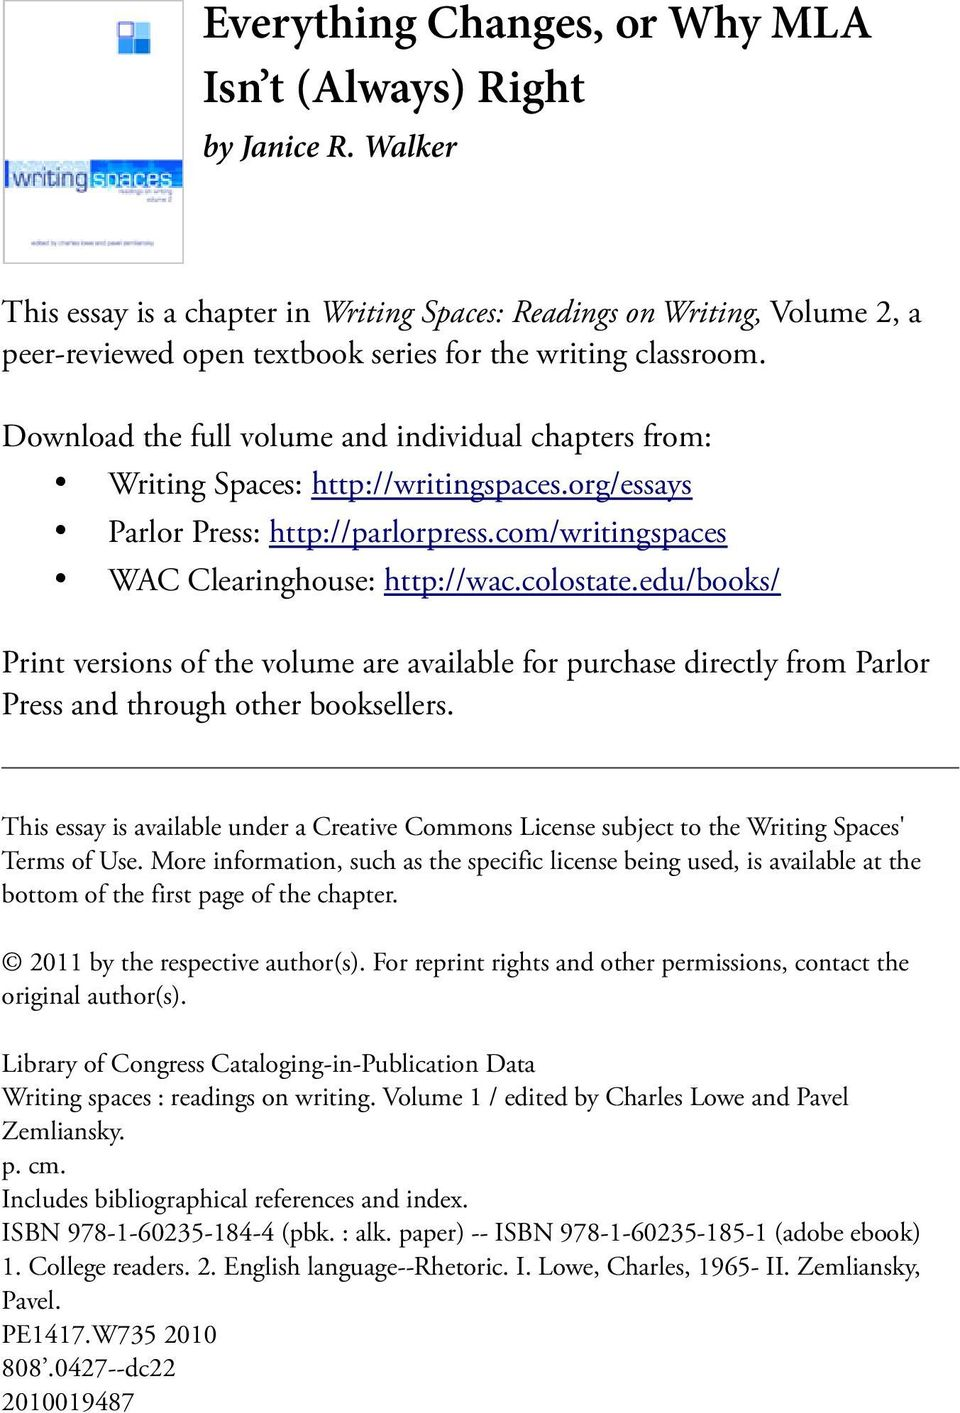 Download the full volume and individual chapters from: Writing Spaces: http://writingspaces.org/essays Parlor Press: http://parlorpress.com/writingspaces WAC Clearinghouse: http://wac.colostate.